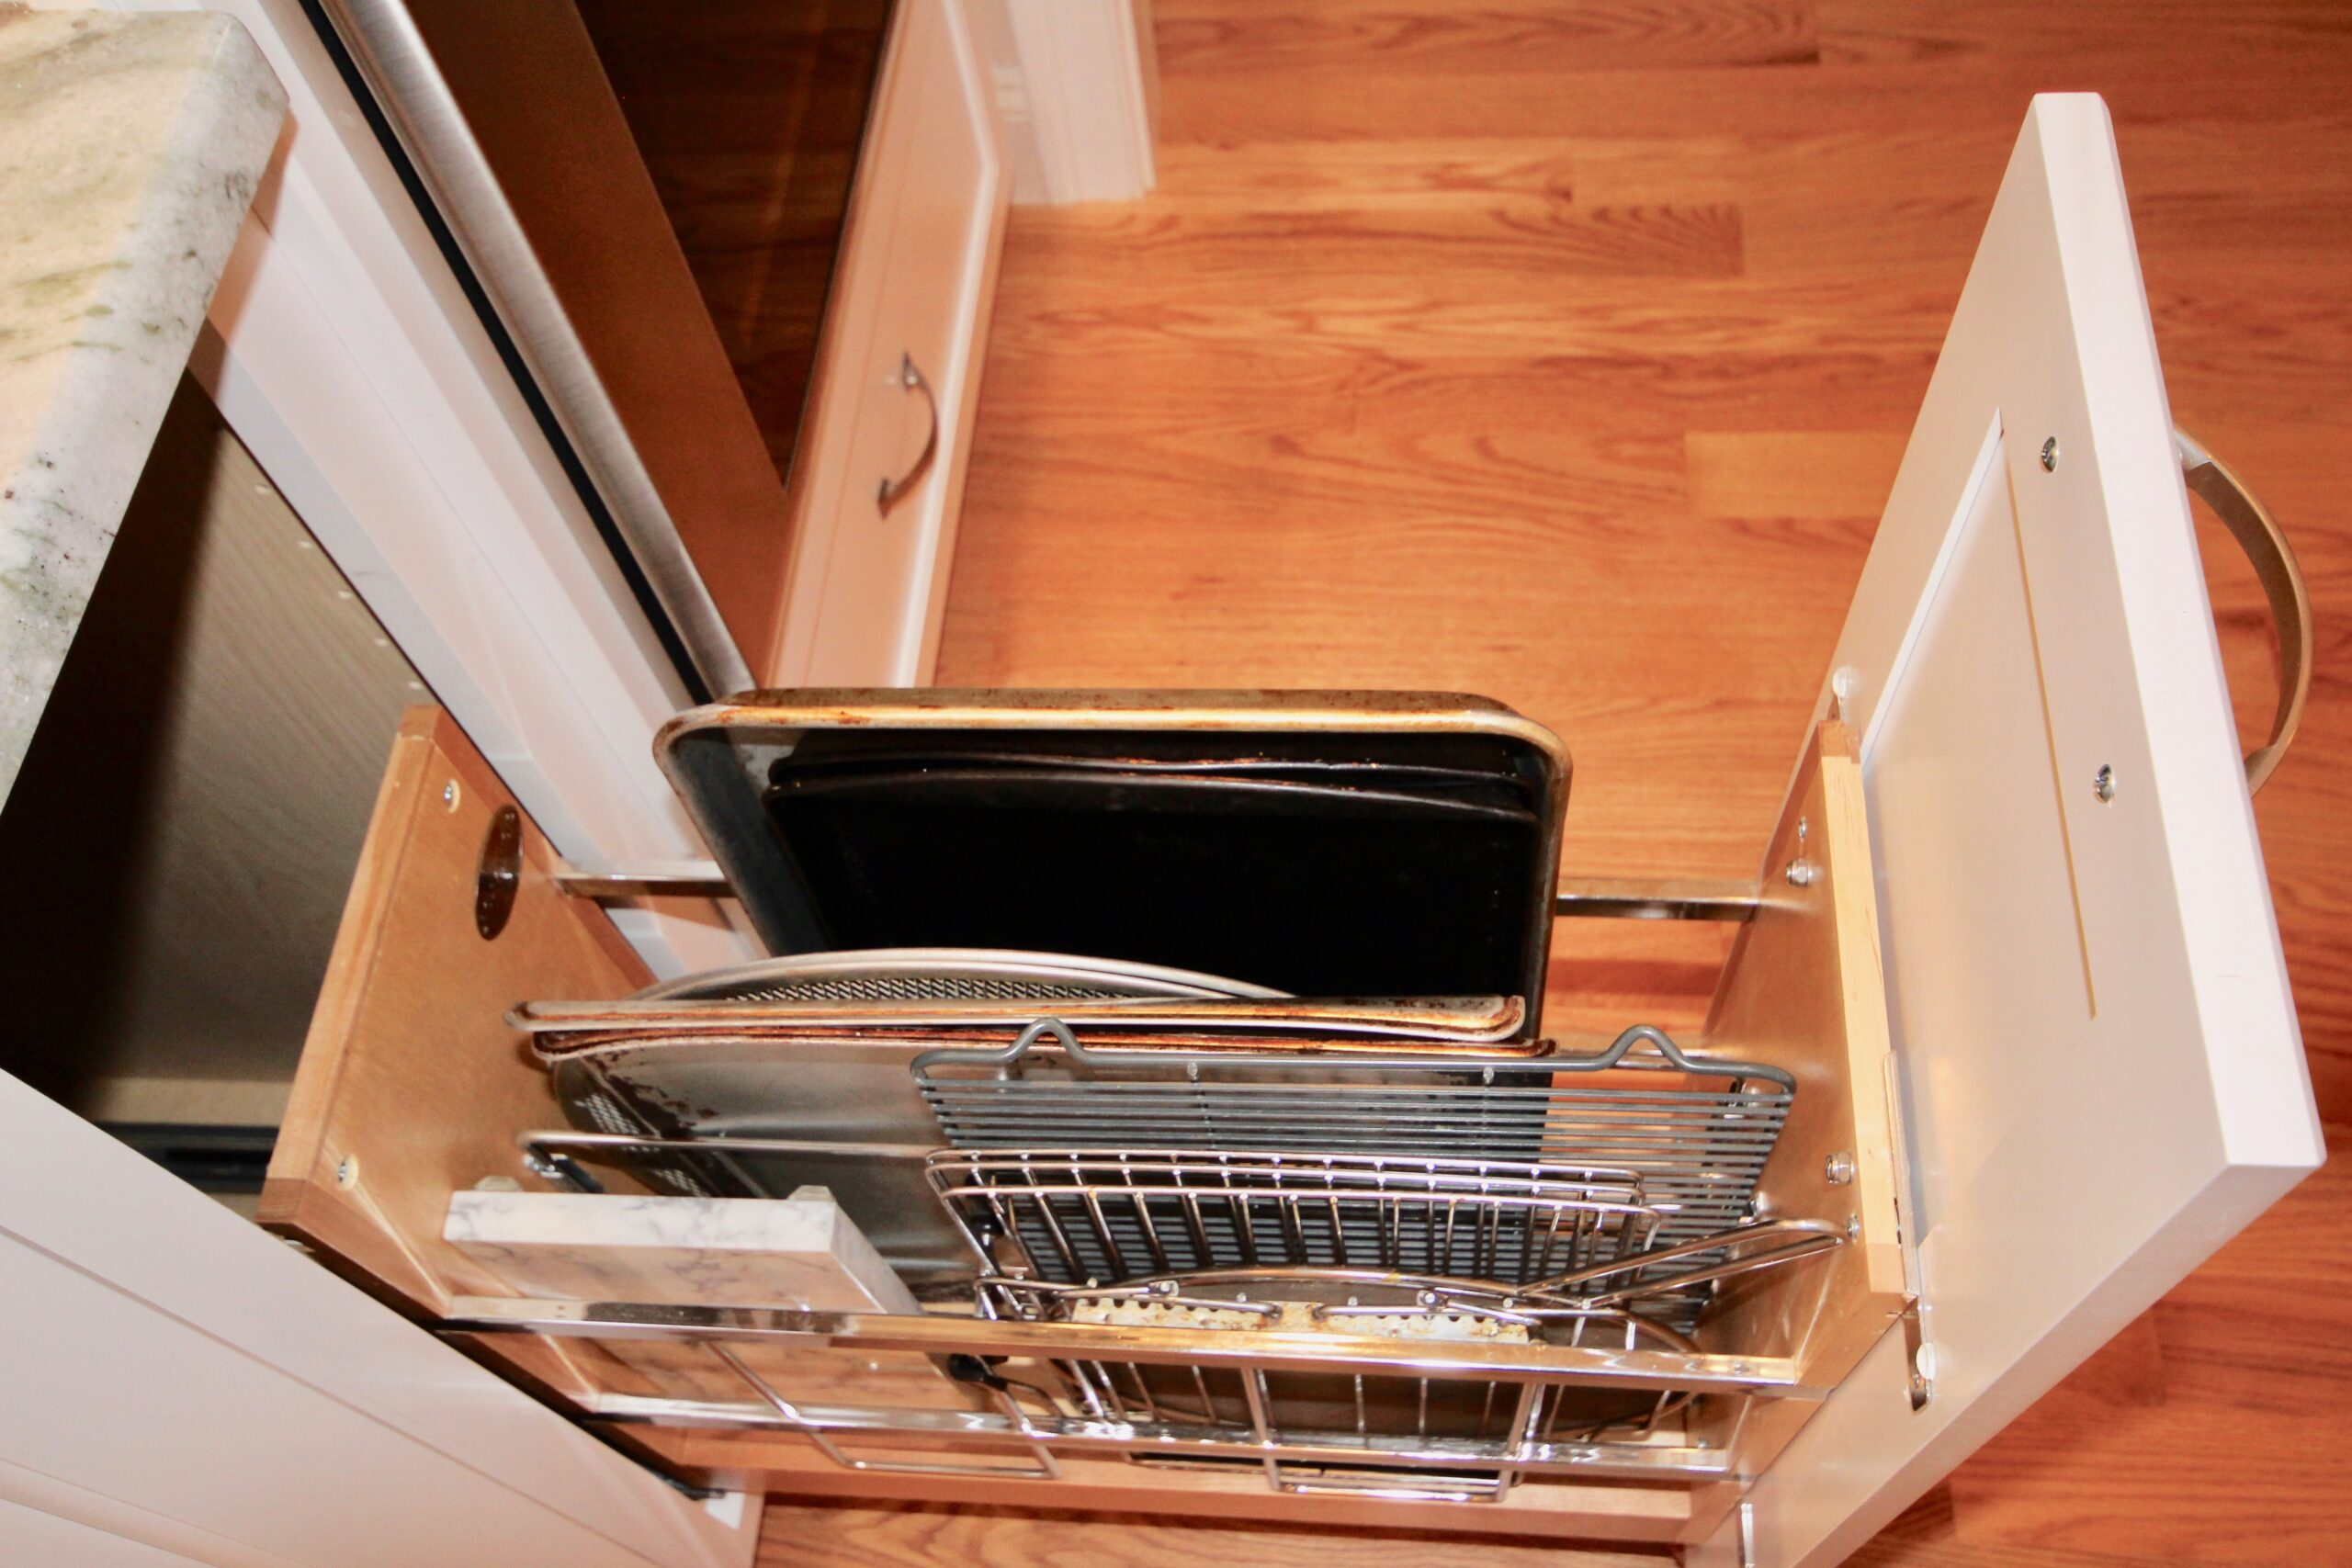 PULLOUT TRAY DIVIDER